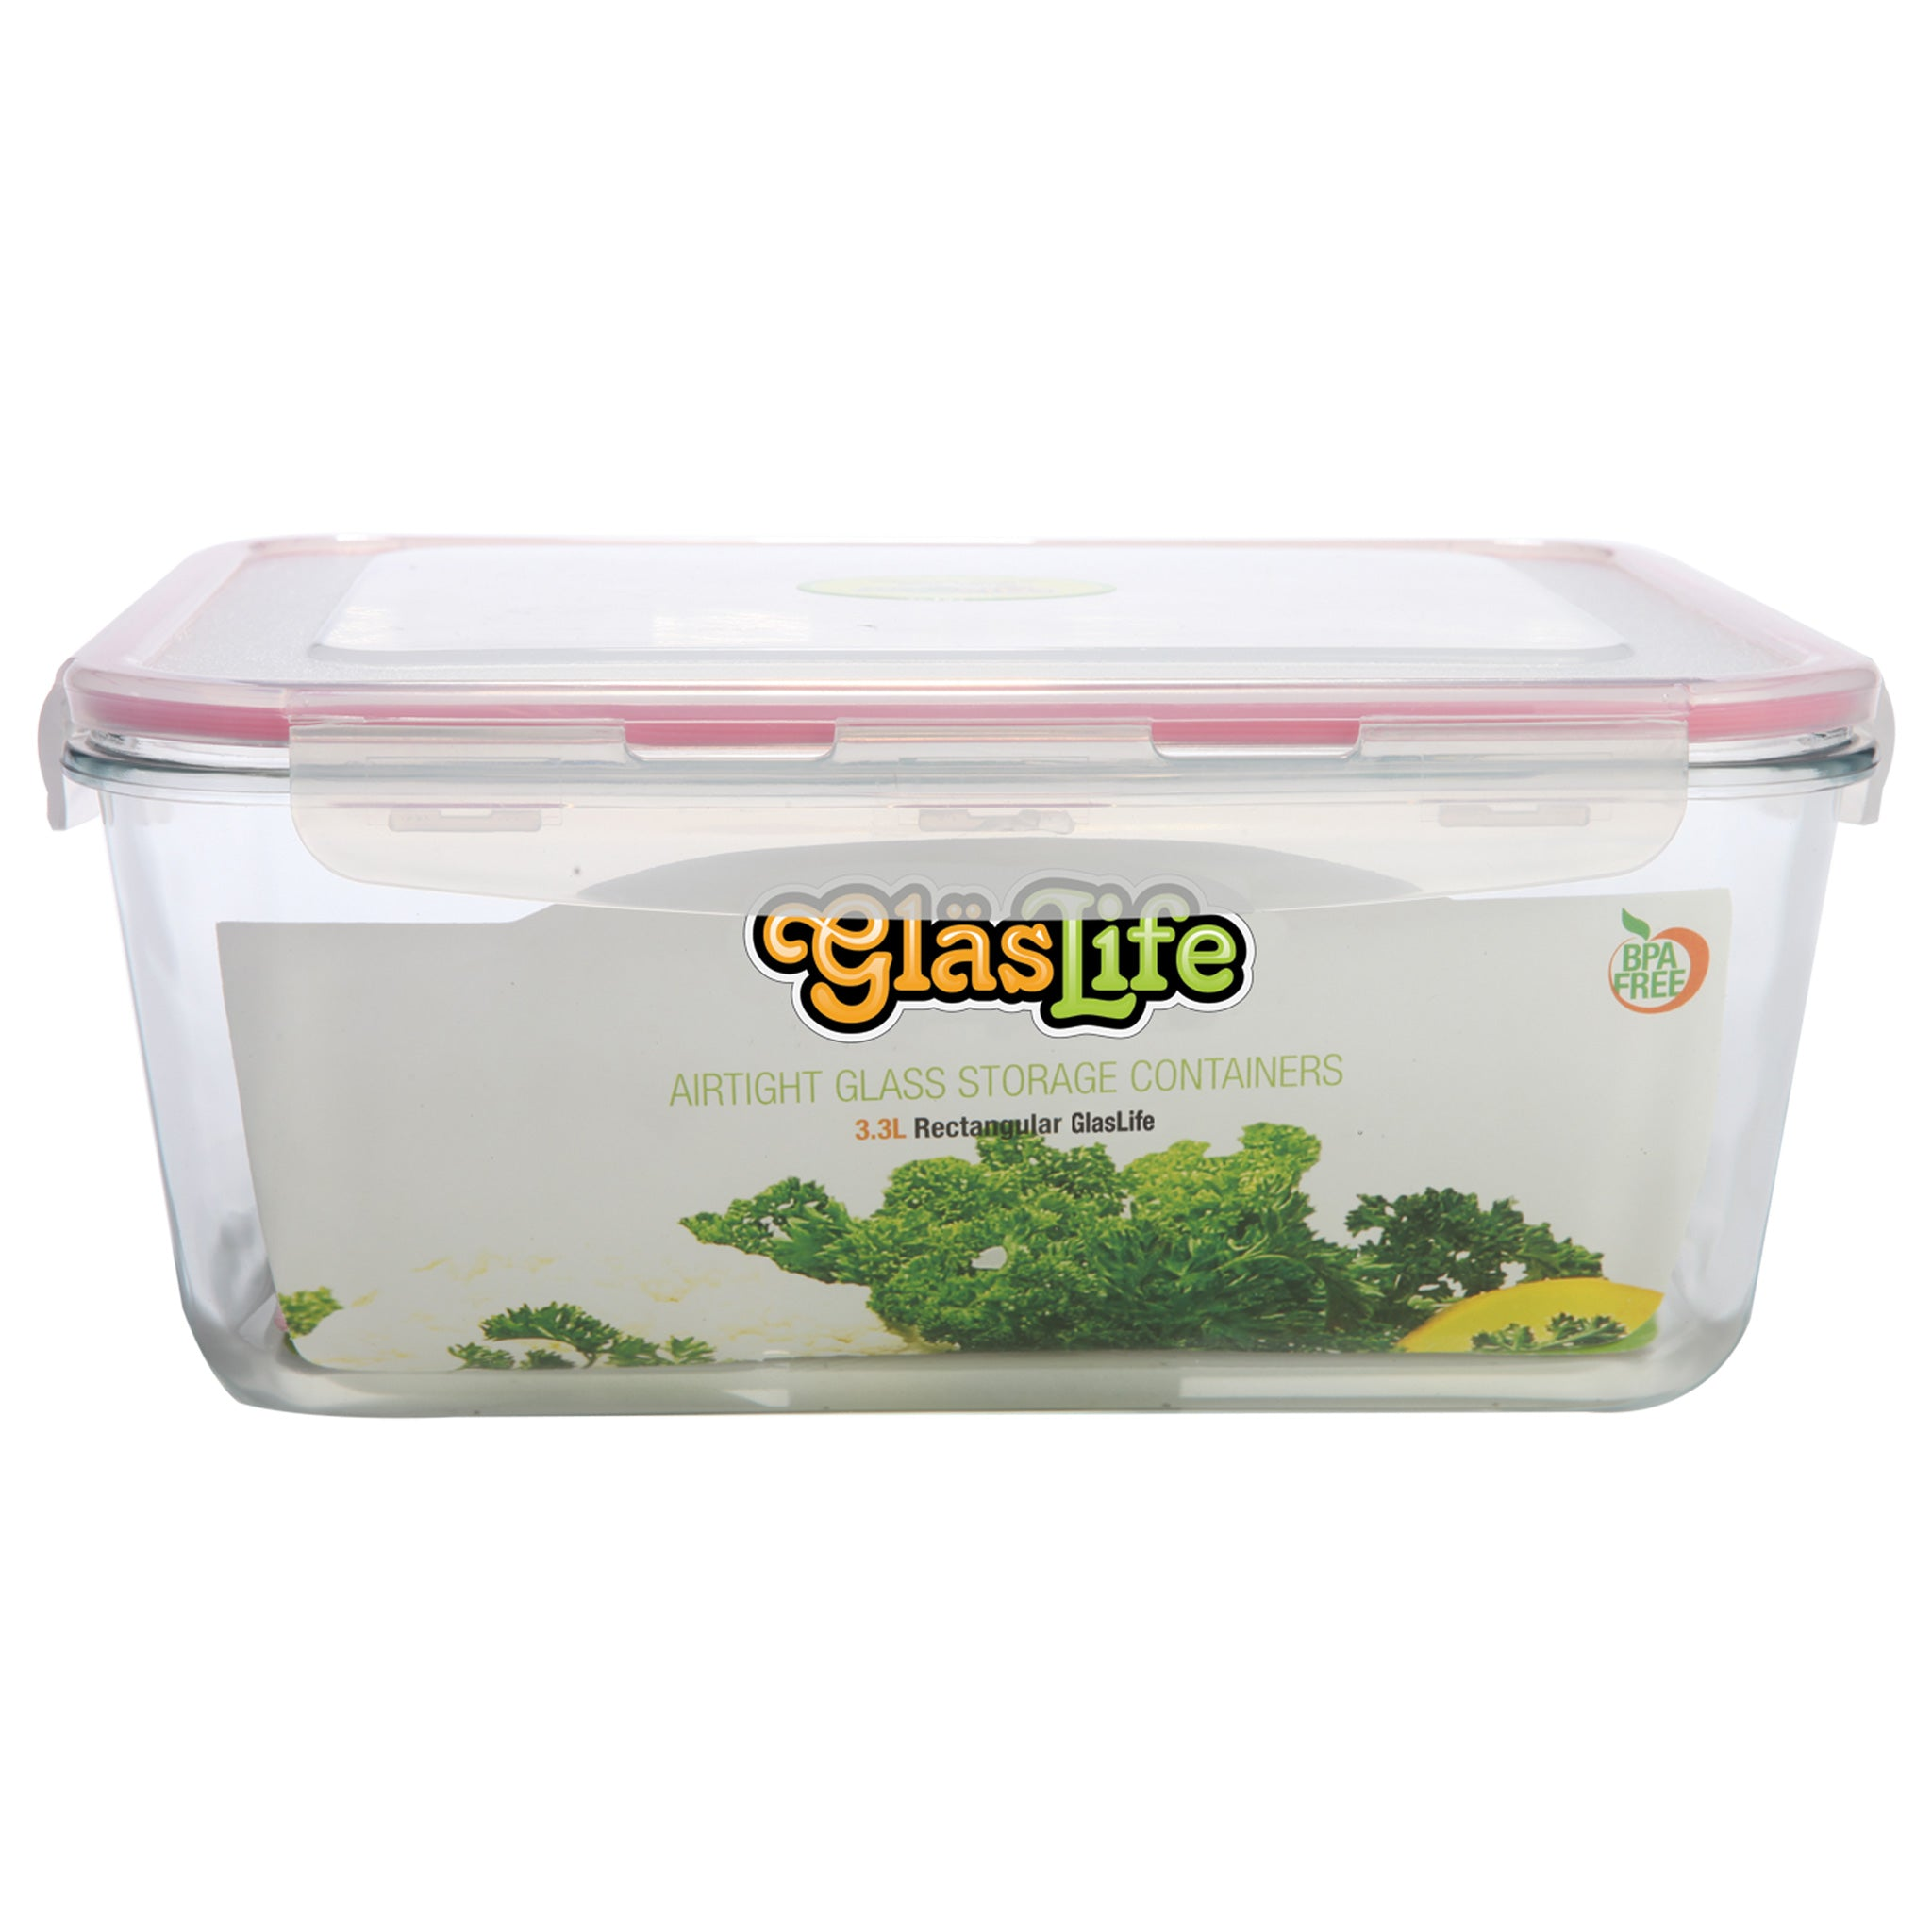 GlasLife® Air-Tight Glass Storage Container - Rectangular GLR33 X-Large 112 oz / 3.3 L